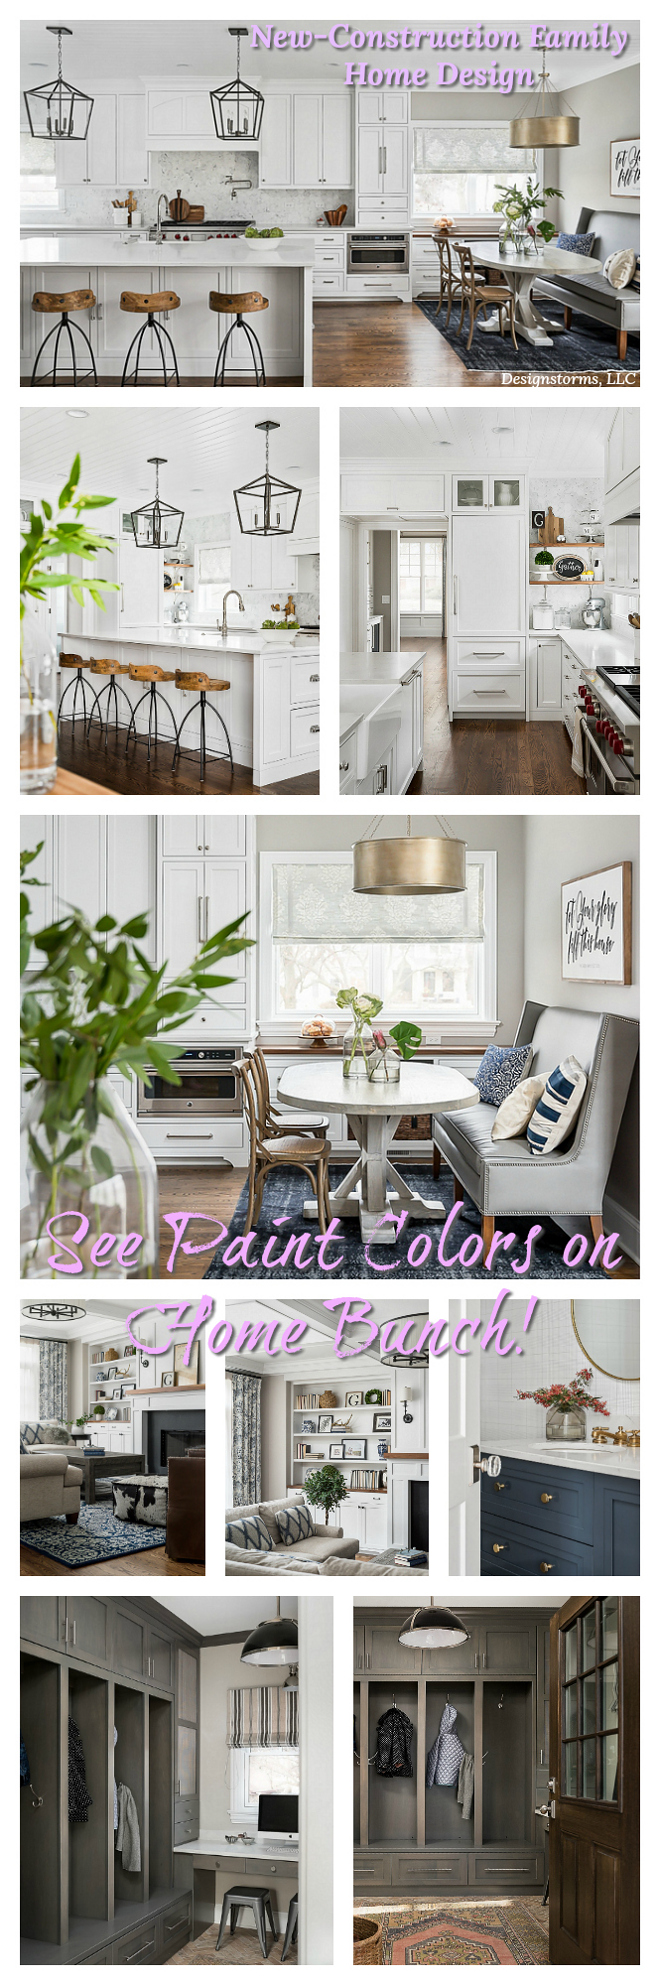 New-Construction Family Home Design Paint Colors on Home Bunch